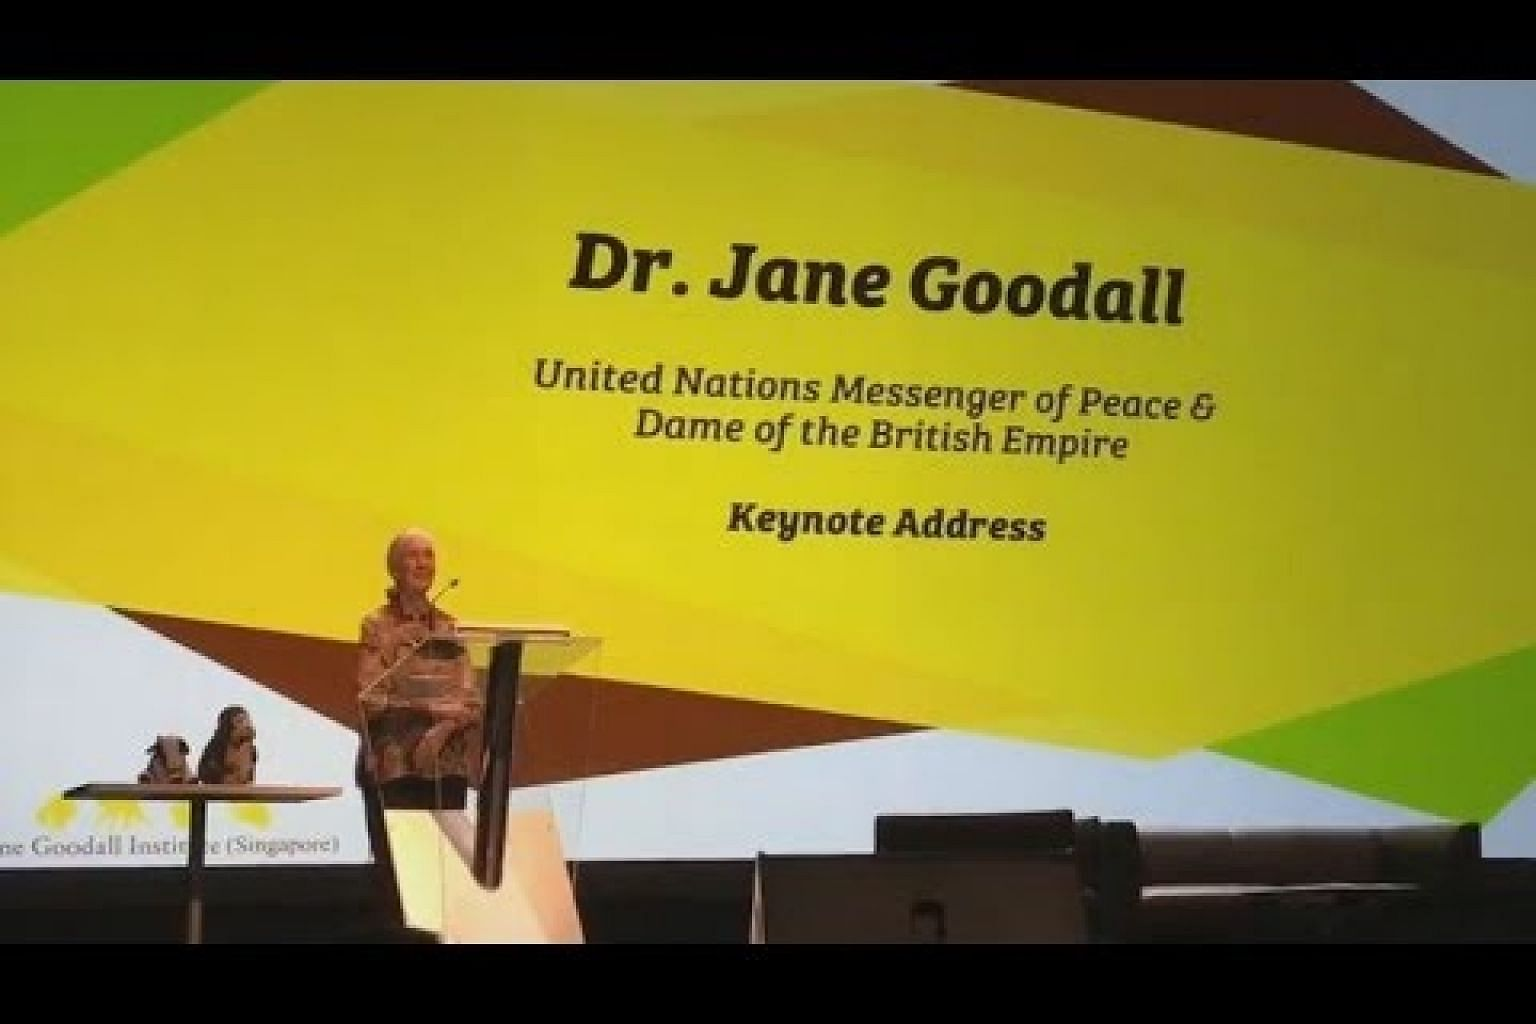 Dr Jane Goodall in Singapore